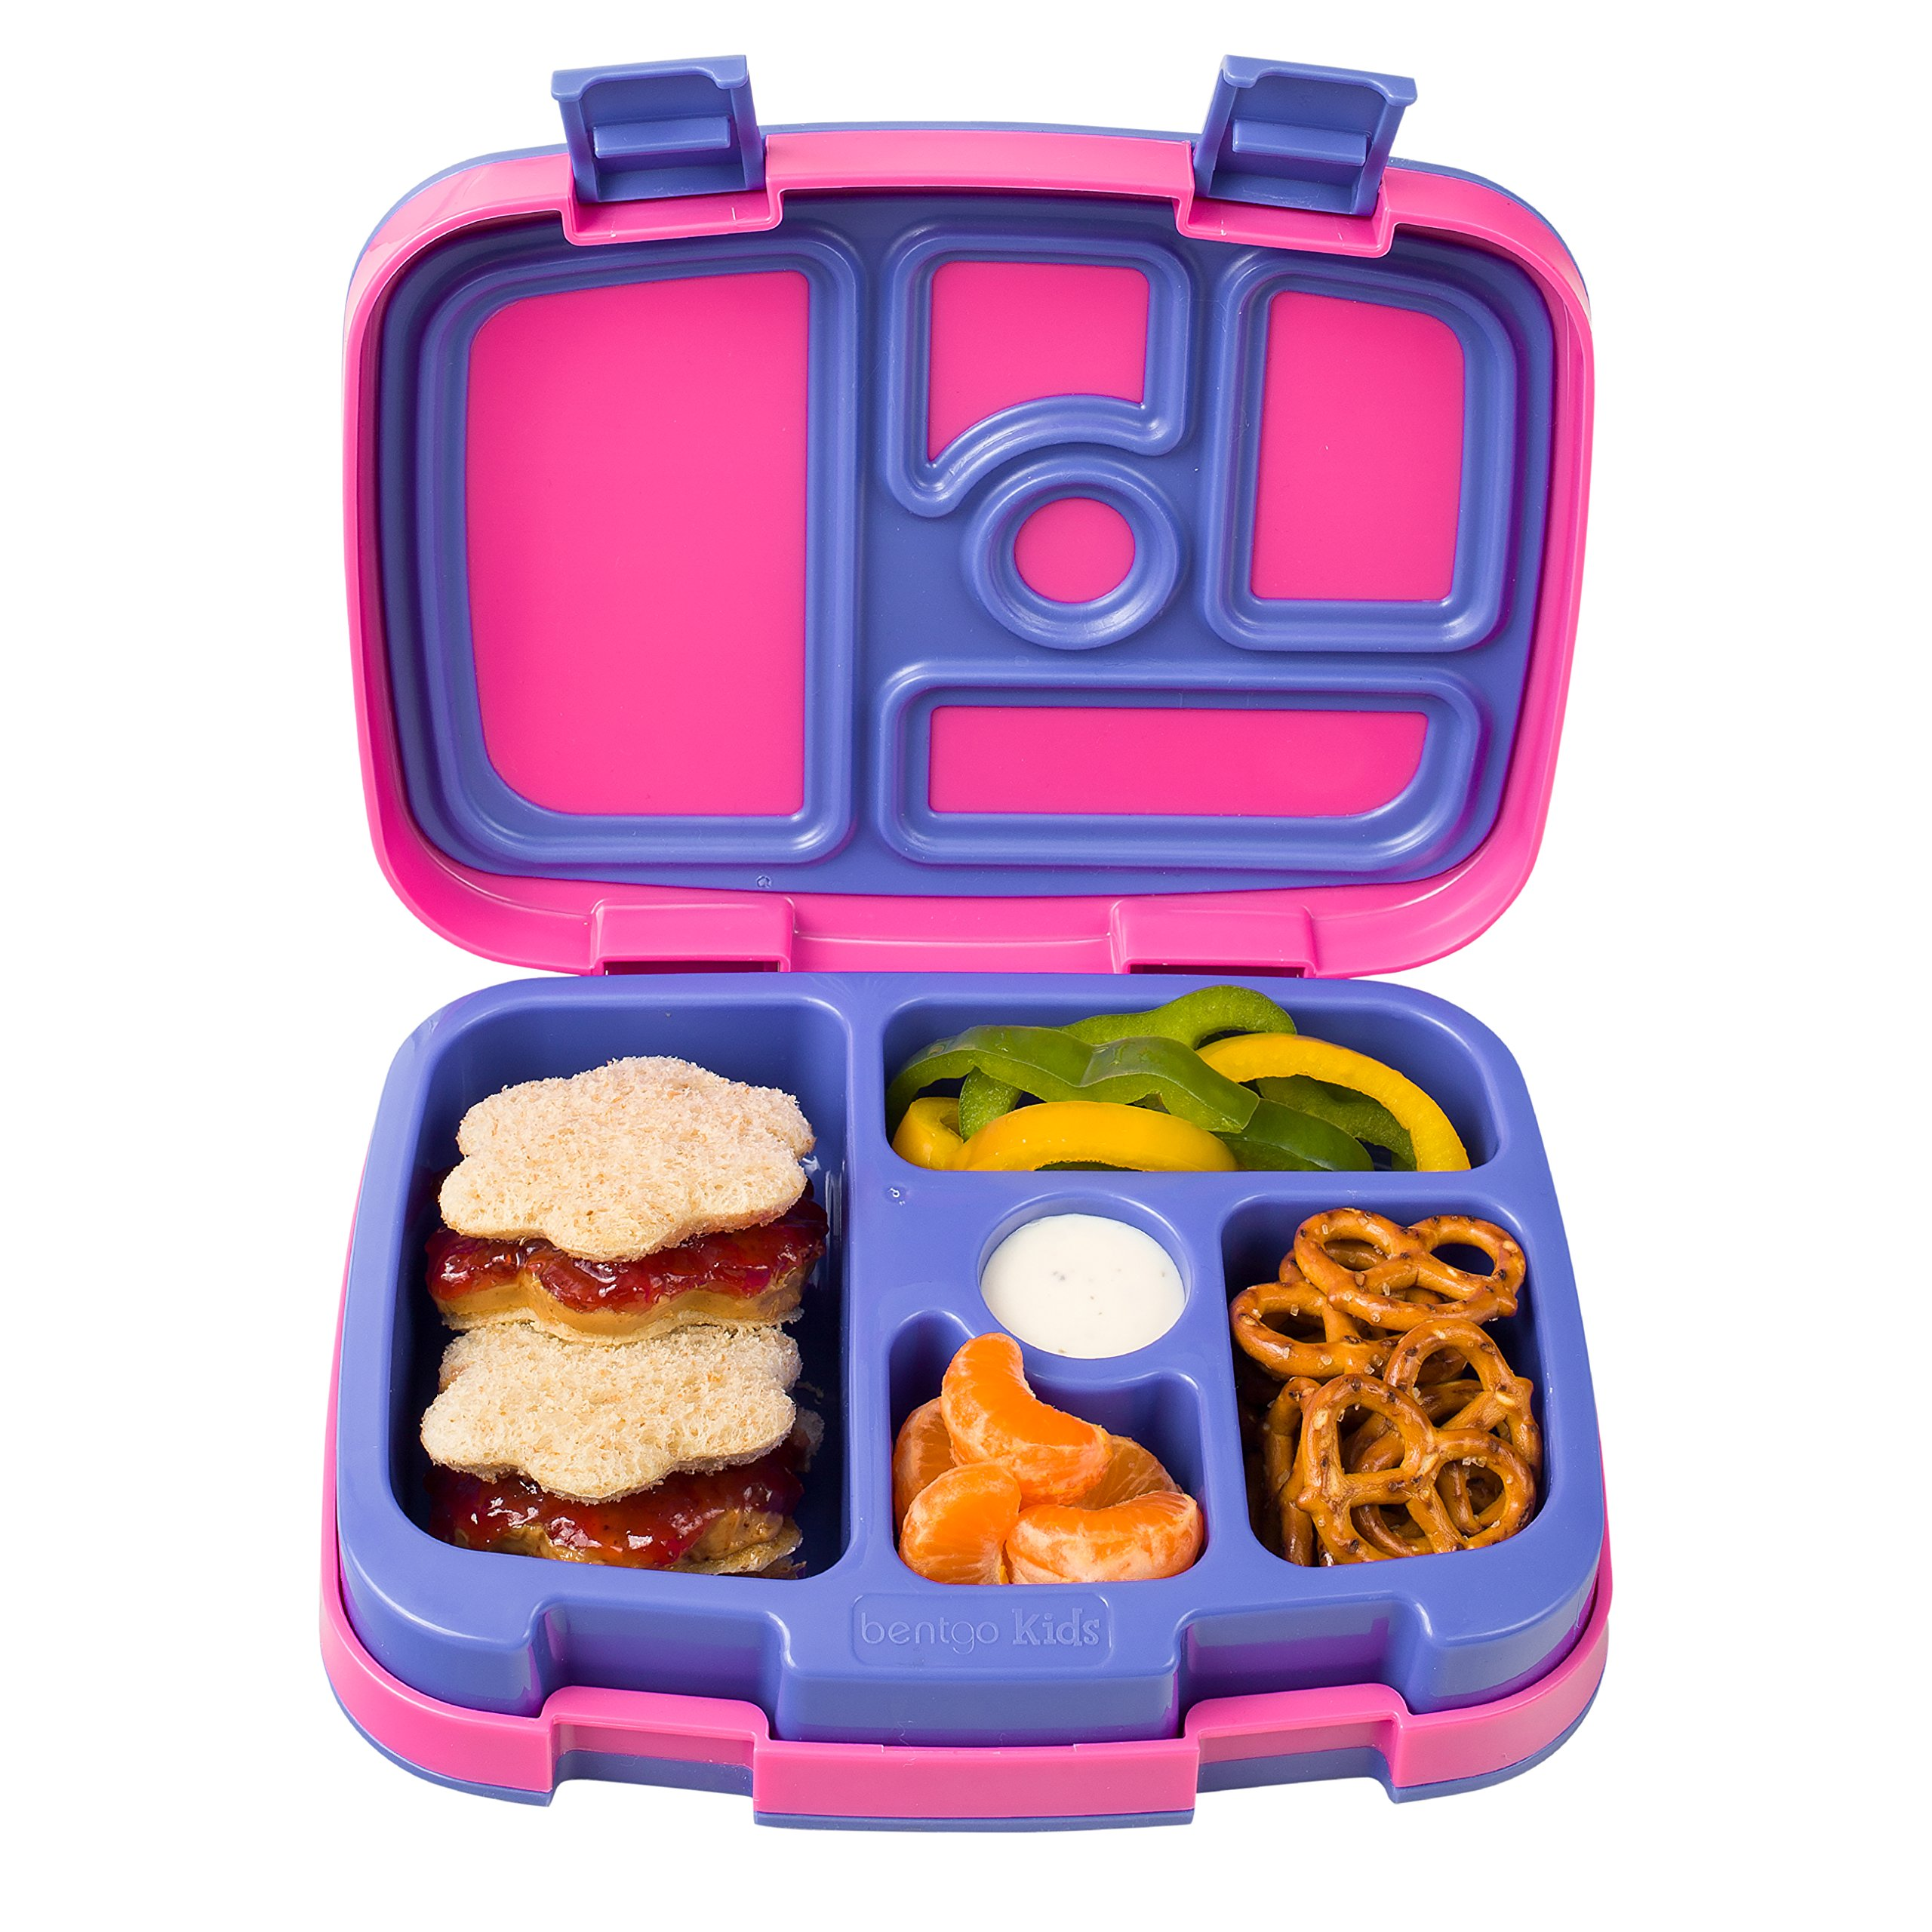 Bentgo Kids Brights - Leak-Proof, 5-Compartment Bento-Style Kids Lunch Box - Ideal Portion Sizes for Ages 3 to 7 - BPA-Free and Food-Safe Materials (Fuchsia) by Bentgo